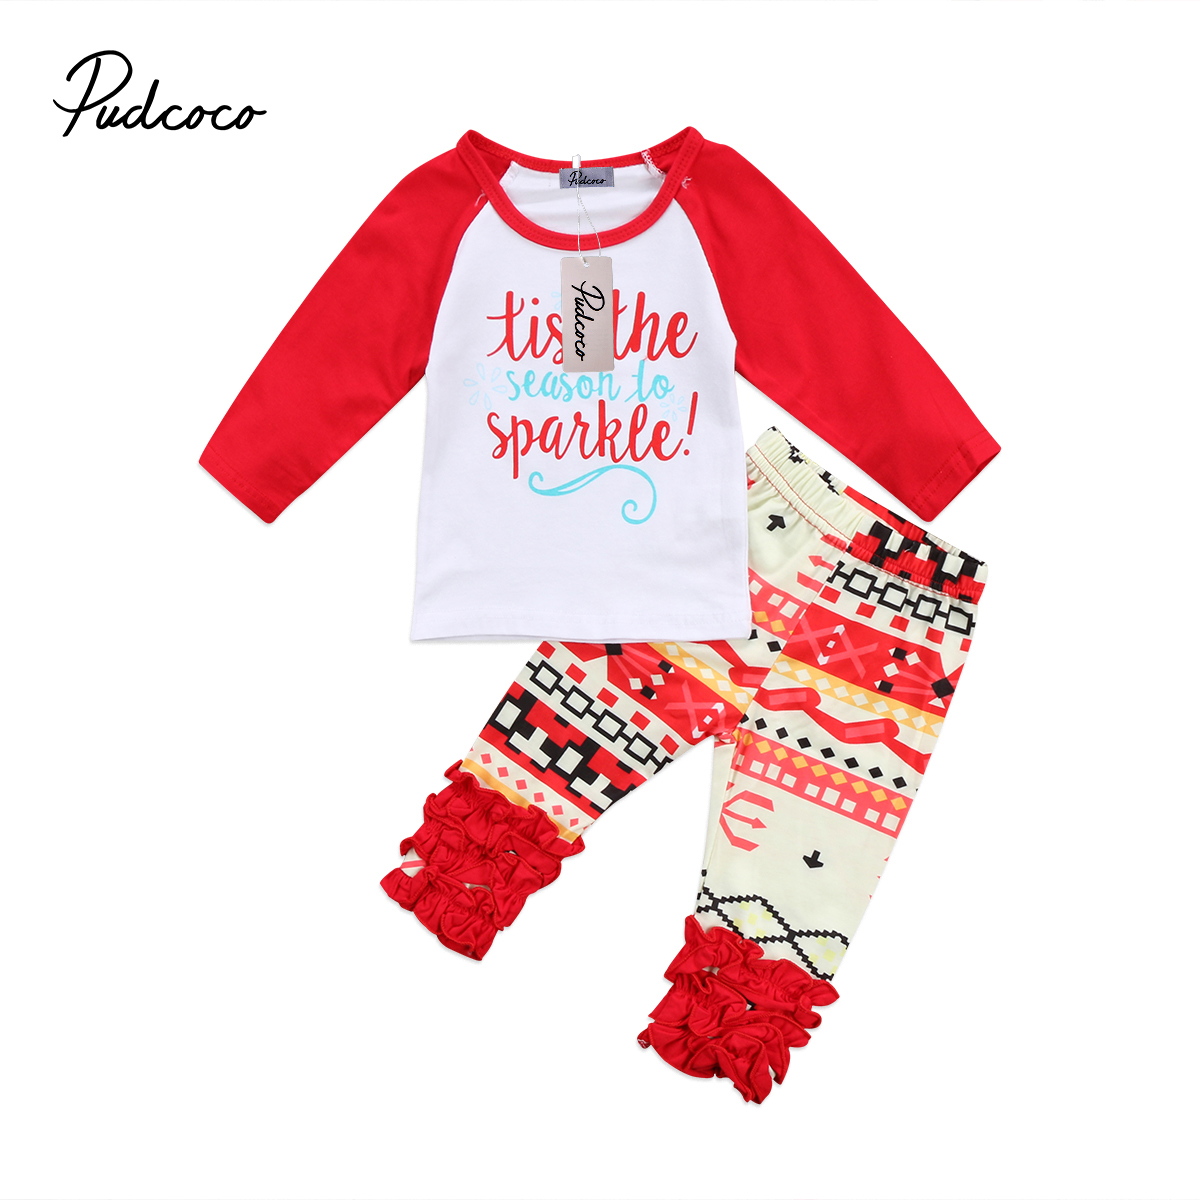 Pudcoco Toddler Baby Girls Clothes Cotton Long Sleeve O-Neck T-shirt Pants Leggings Outfits Set 0-24Months Helen115